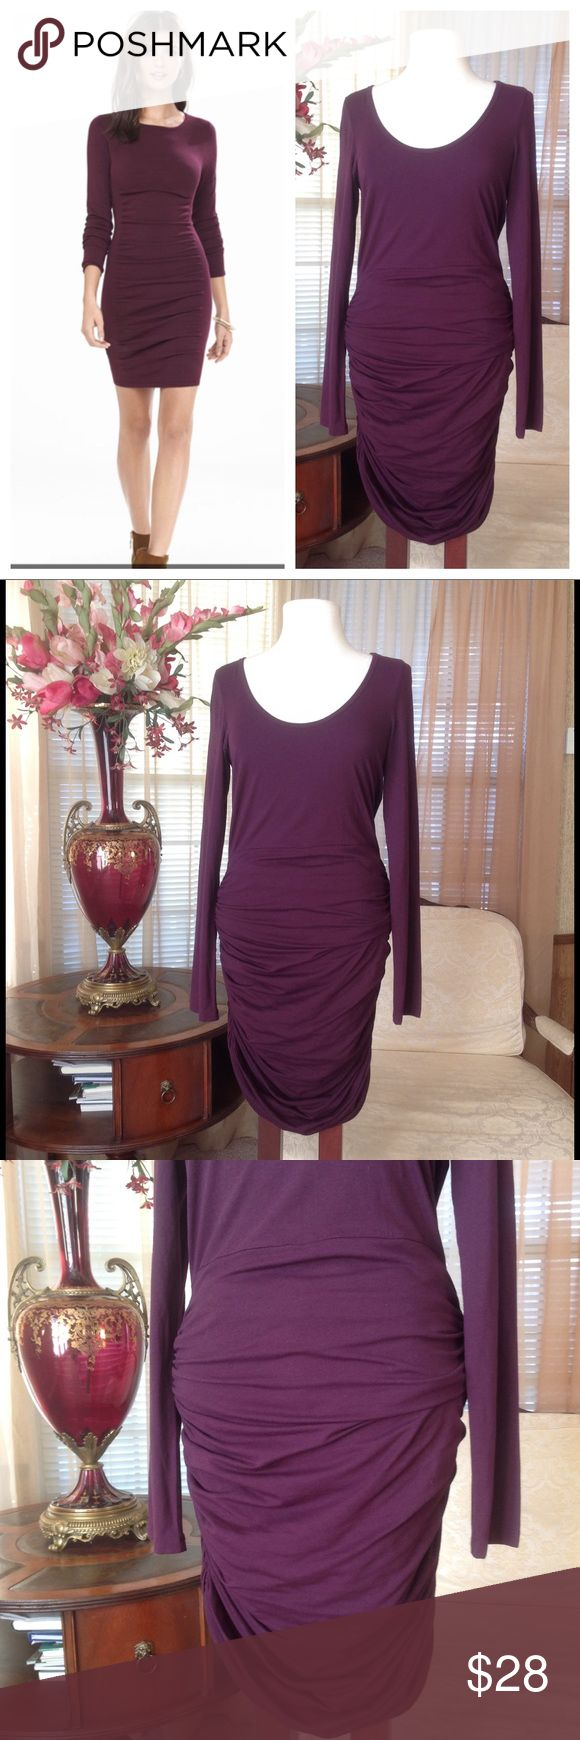 Express ruched burgundy sweater dress Never worn. No signs of wear.                      b Express Dresses